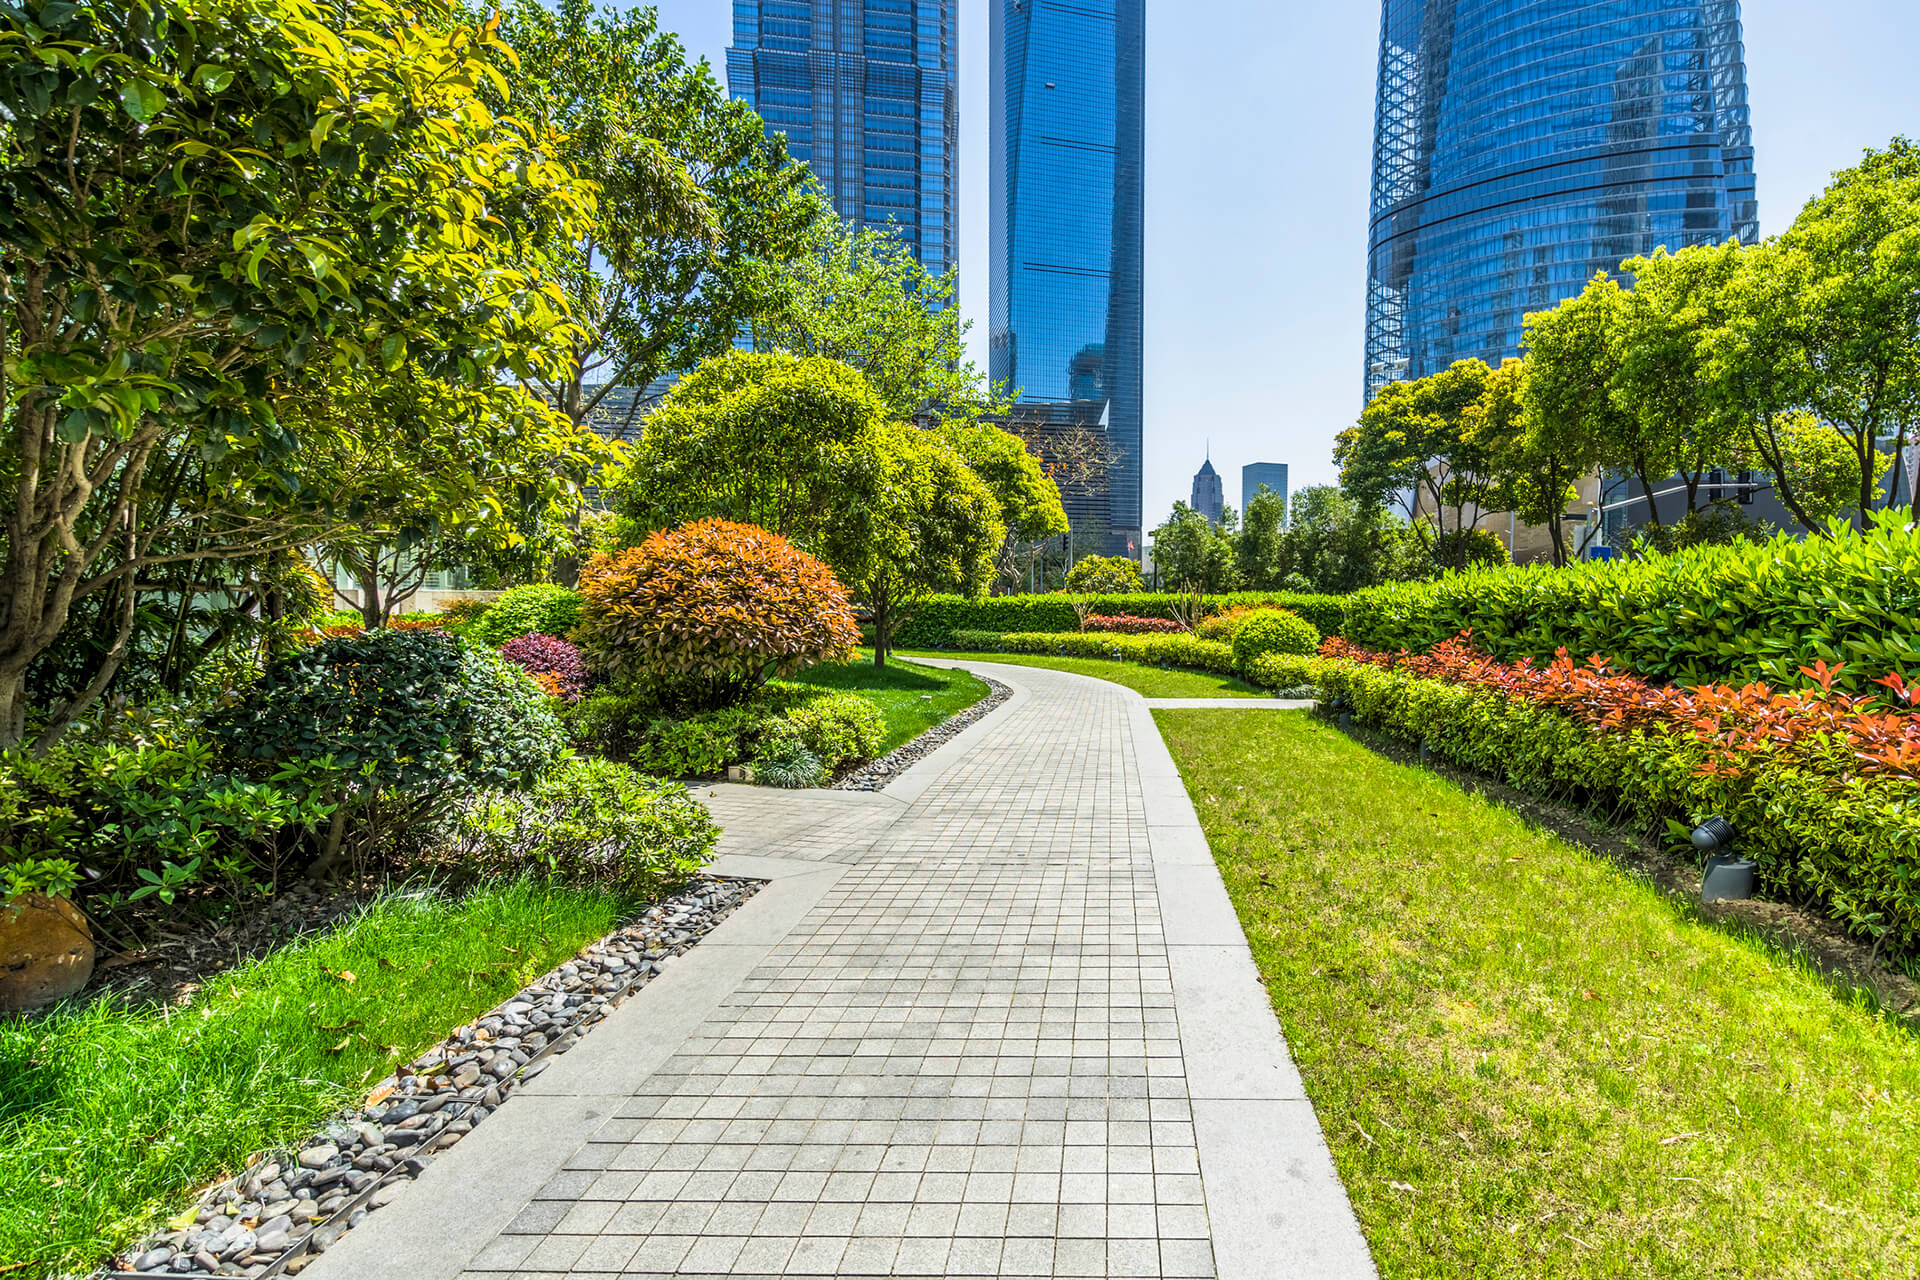 landscaping design Calgary - improve aesthetic